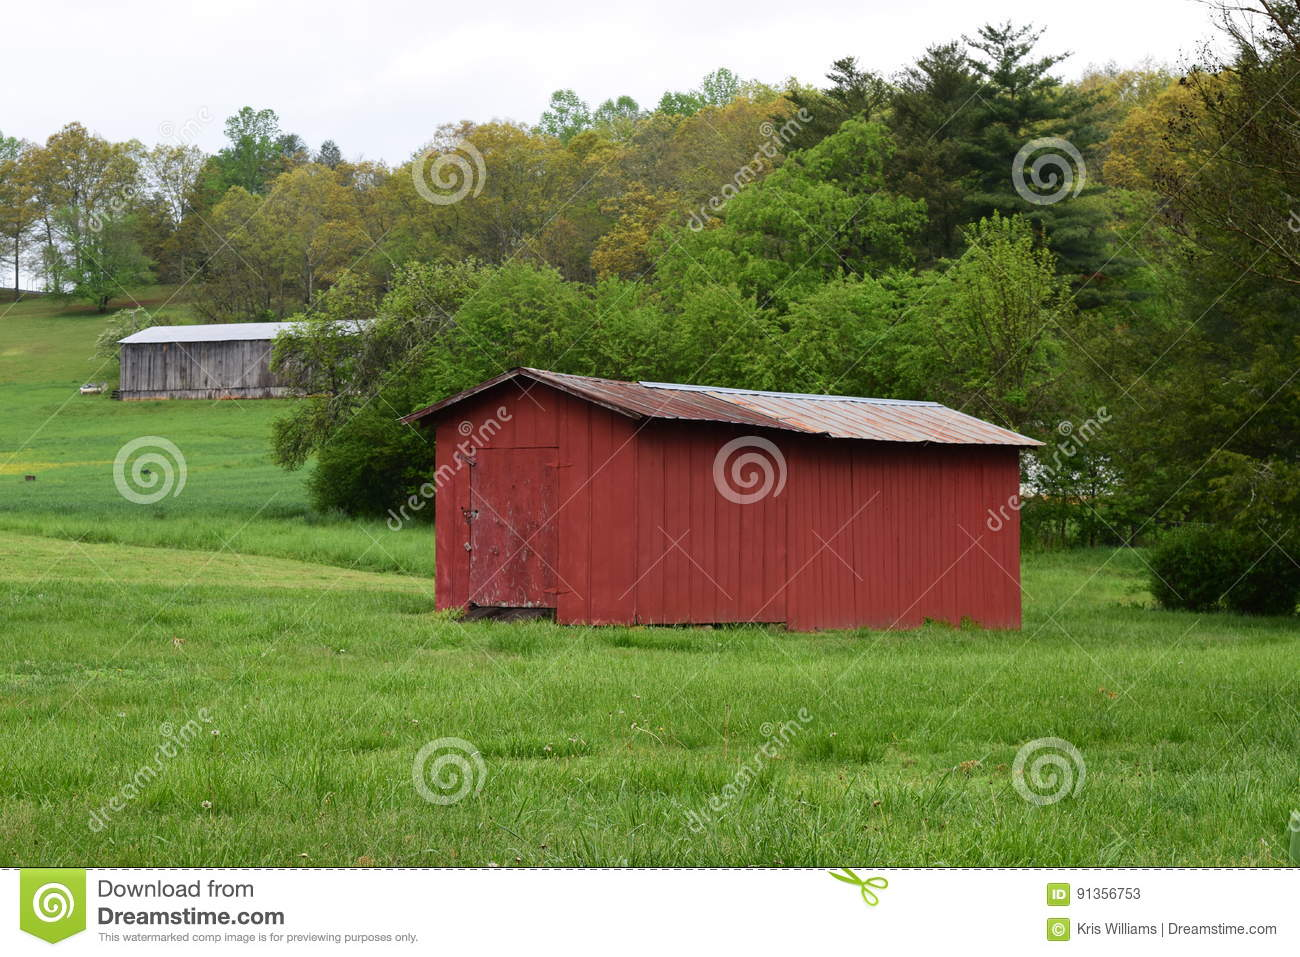 Two Barns in two fields